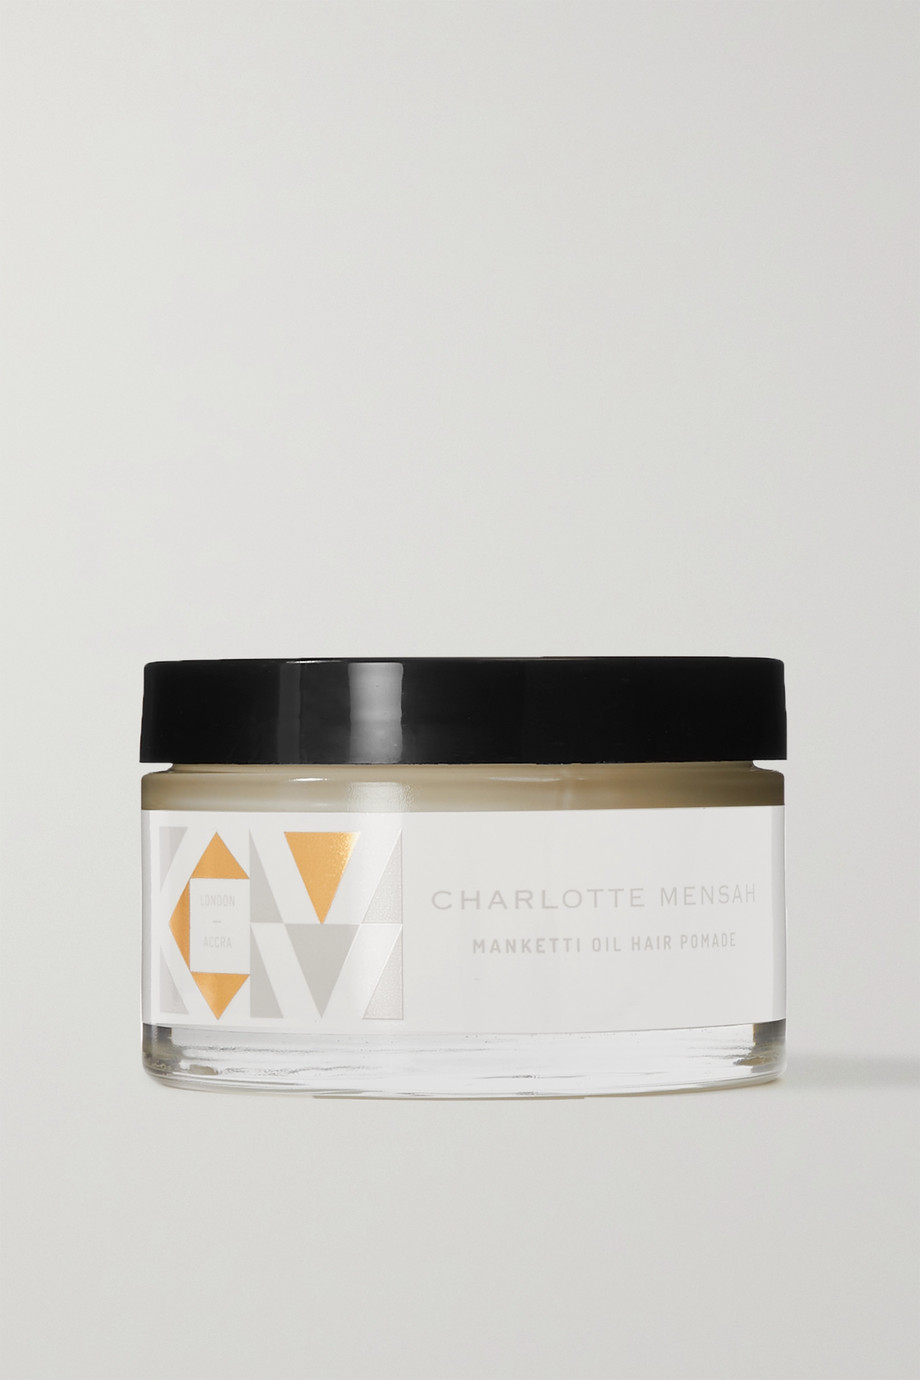 Charlotte Mensah Manketti Oil Hair Pomade, 200ml